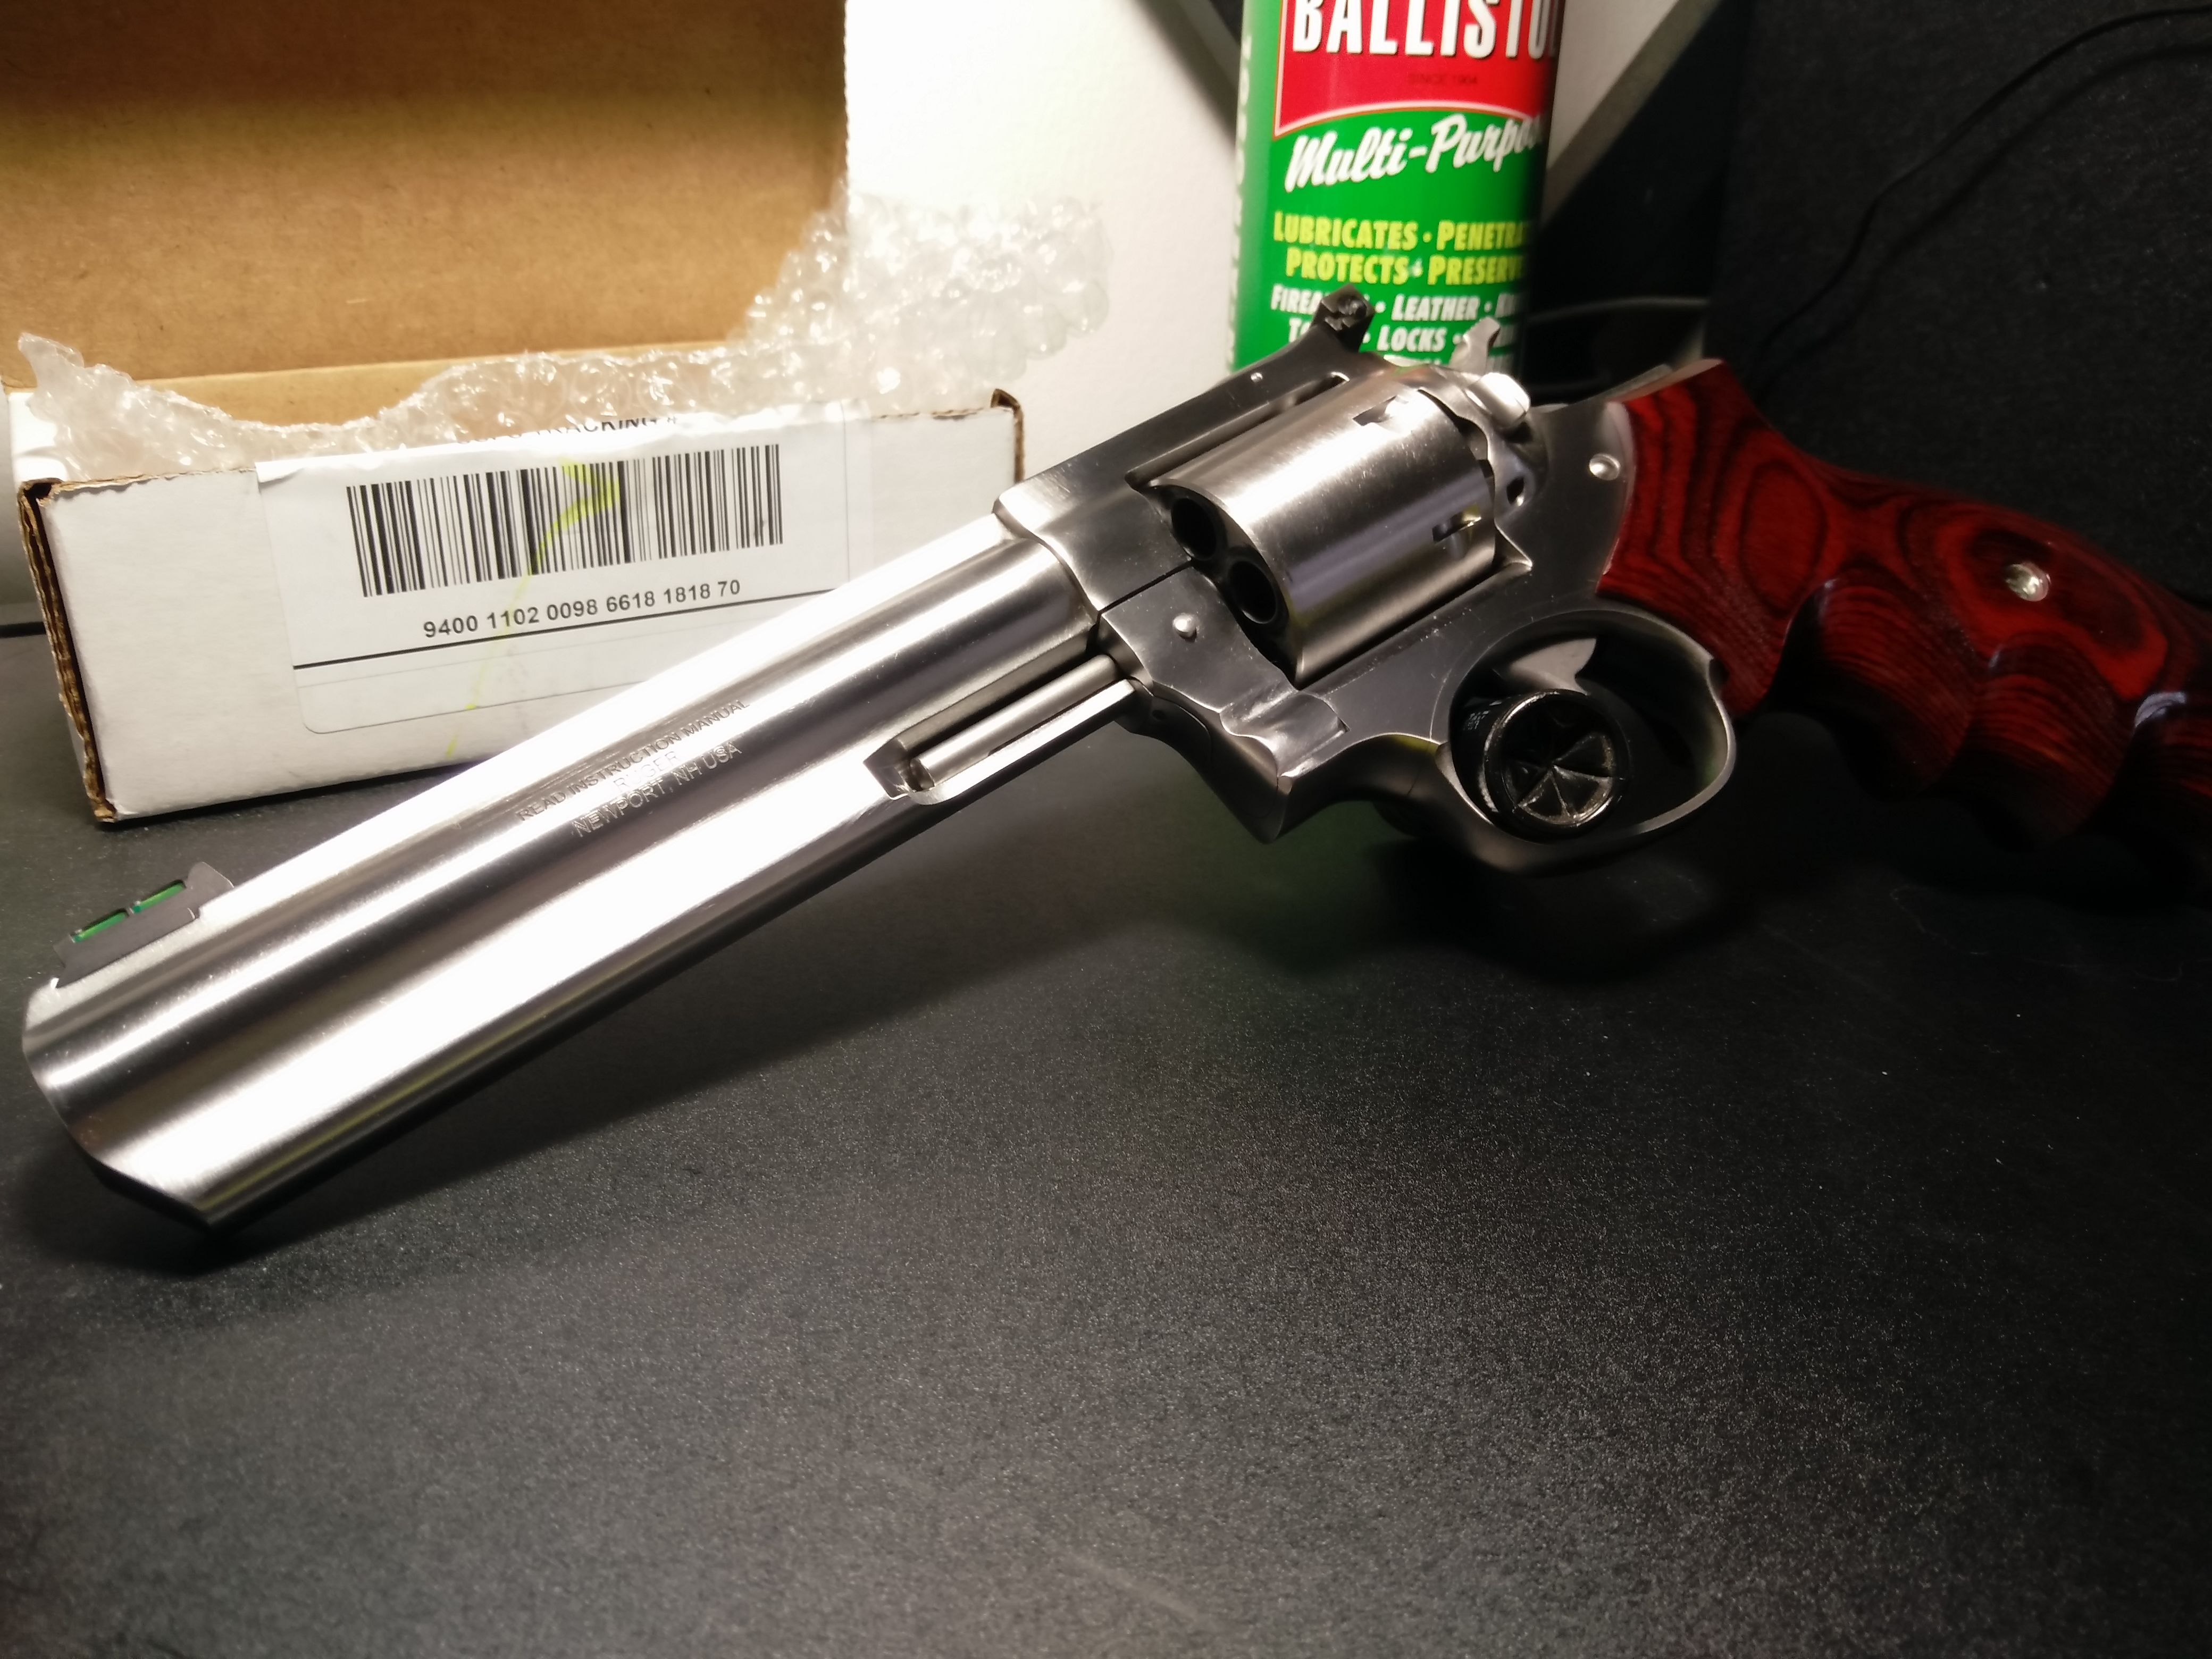 My 6 inch Talo Edition Ruger GP100 with Badger Custom